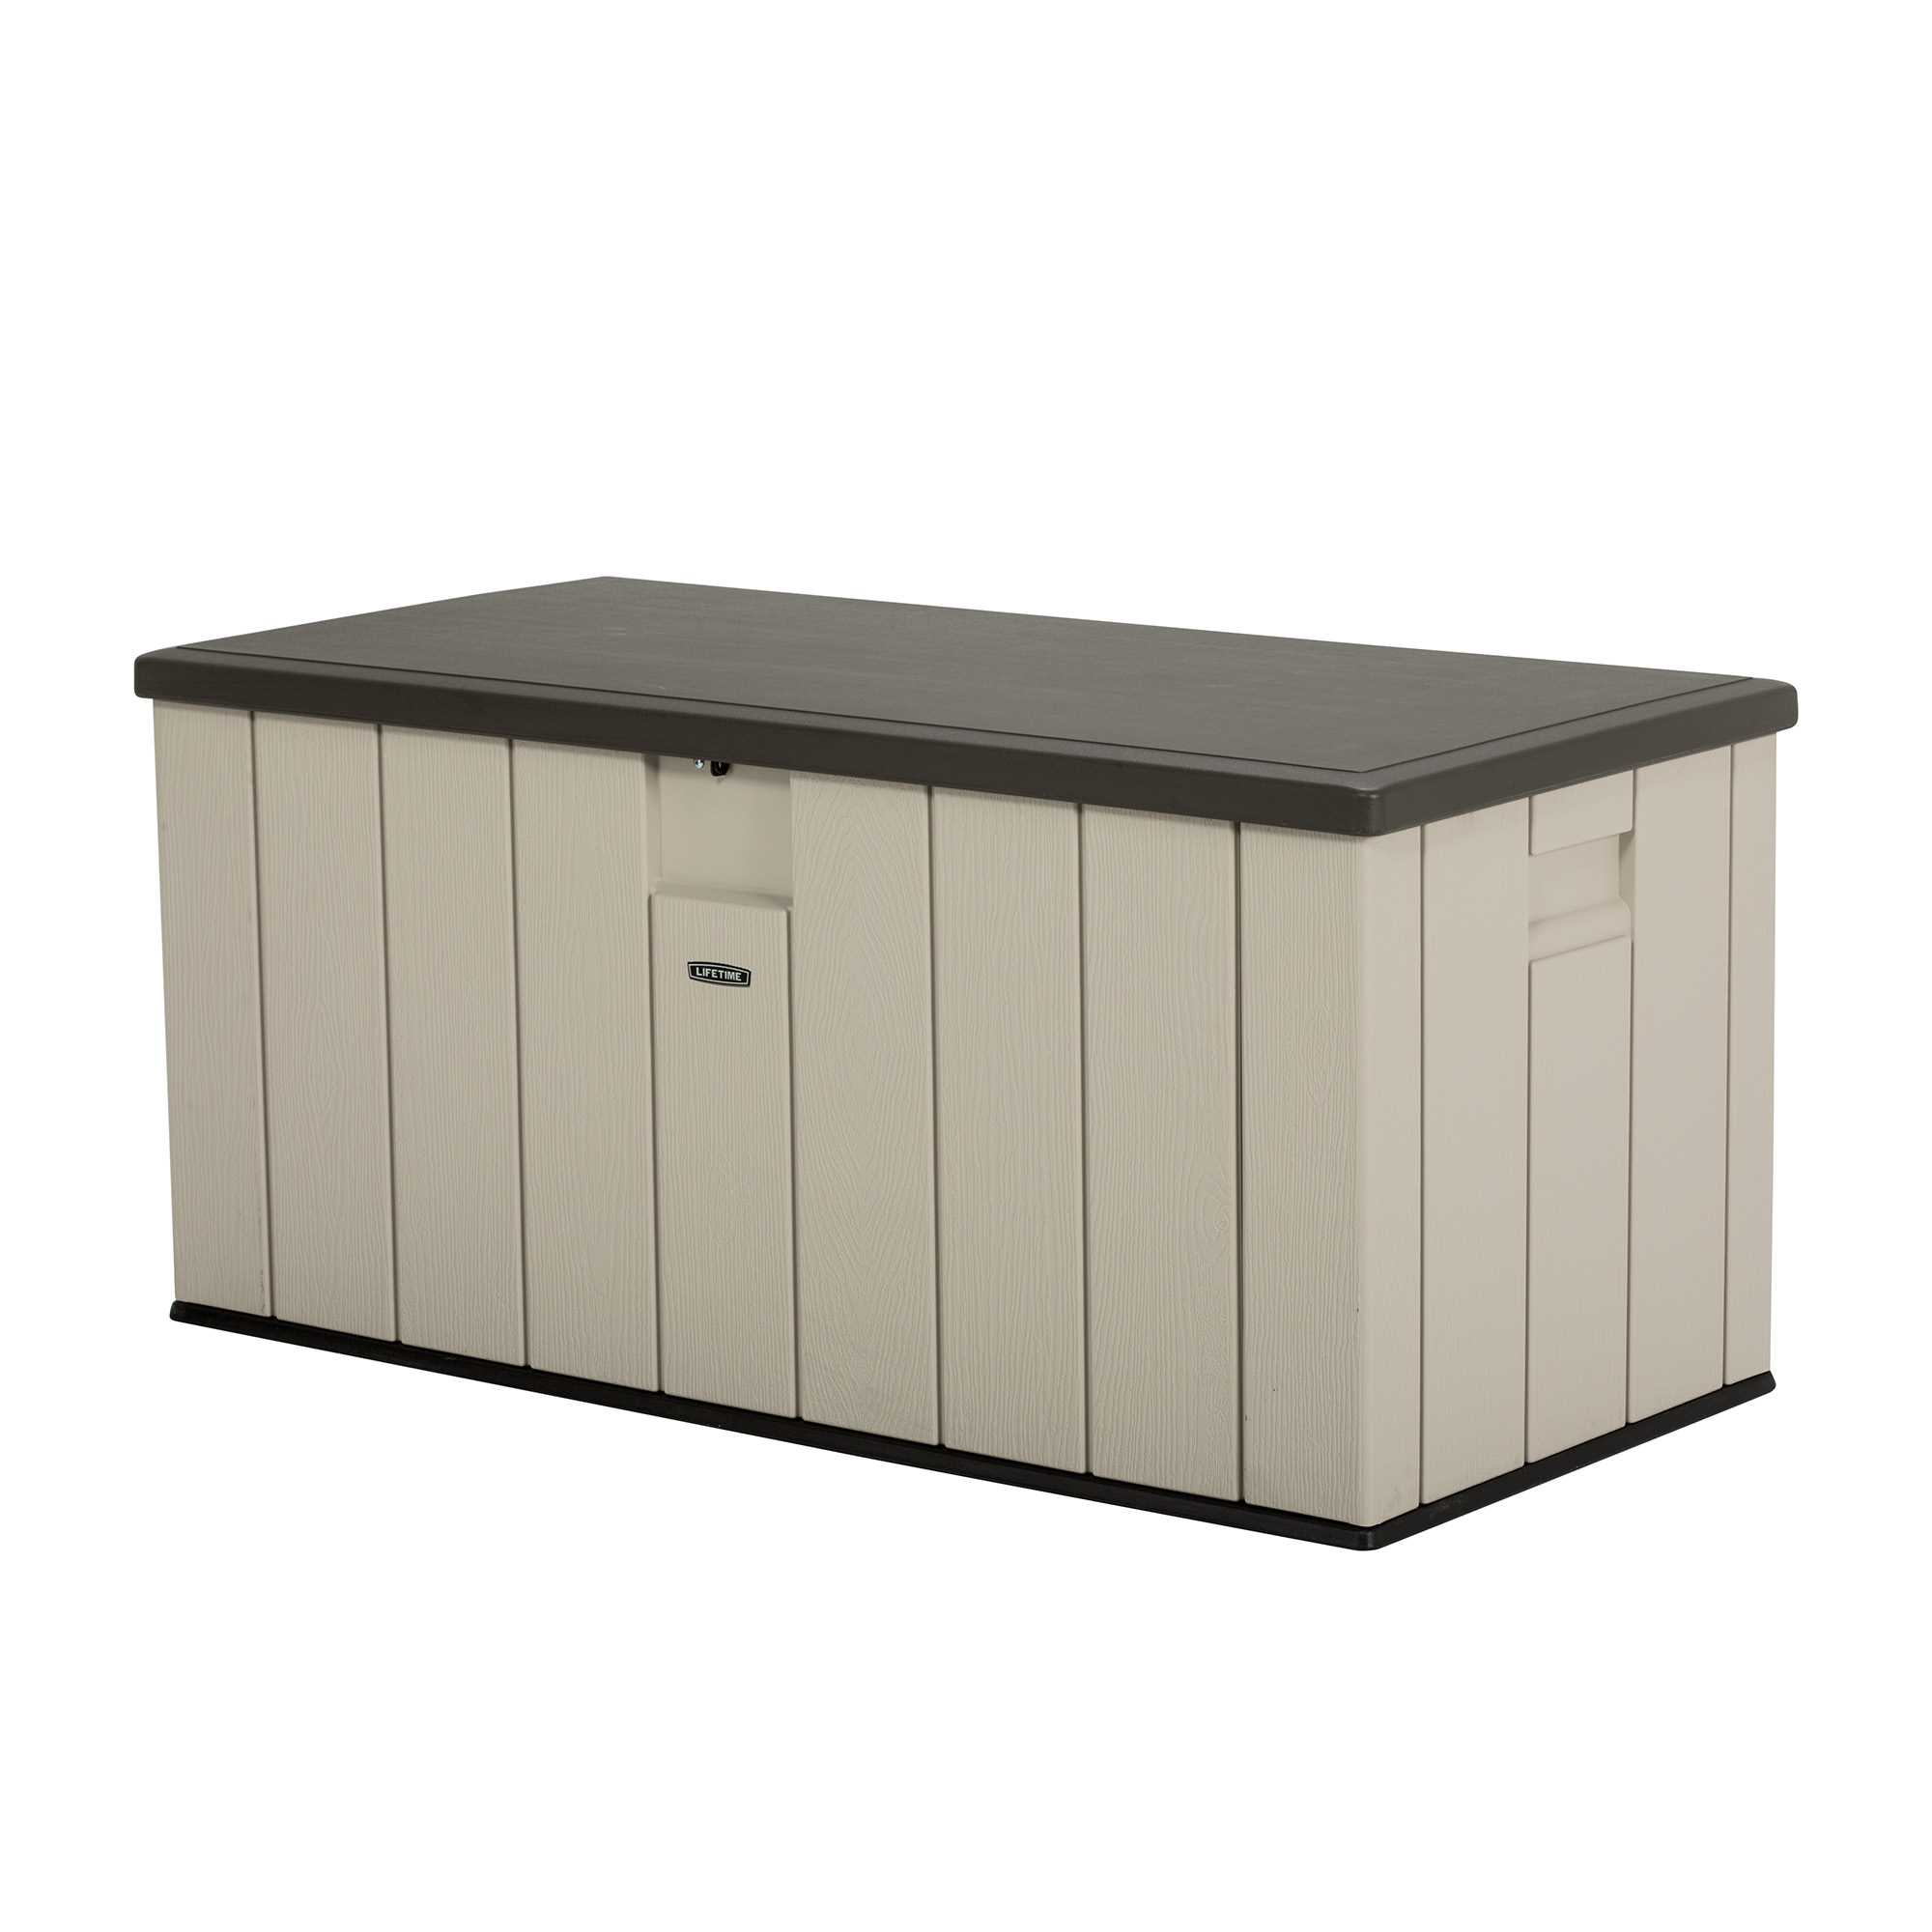 Lifetime 150 Gallon Heavy-Duty Outdoor Storage Deck Box, Desert Sand